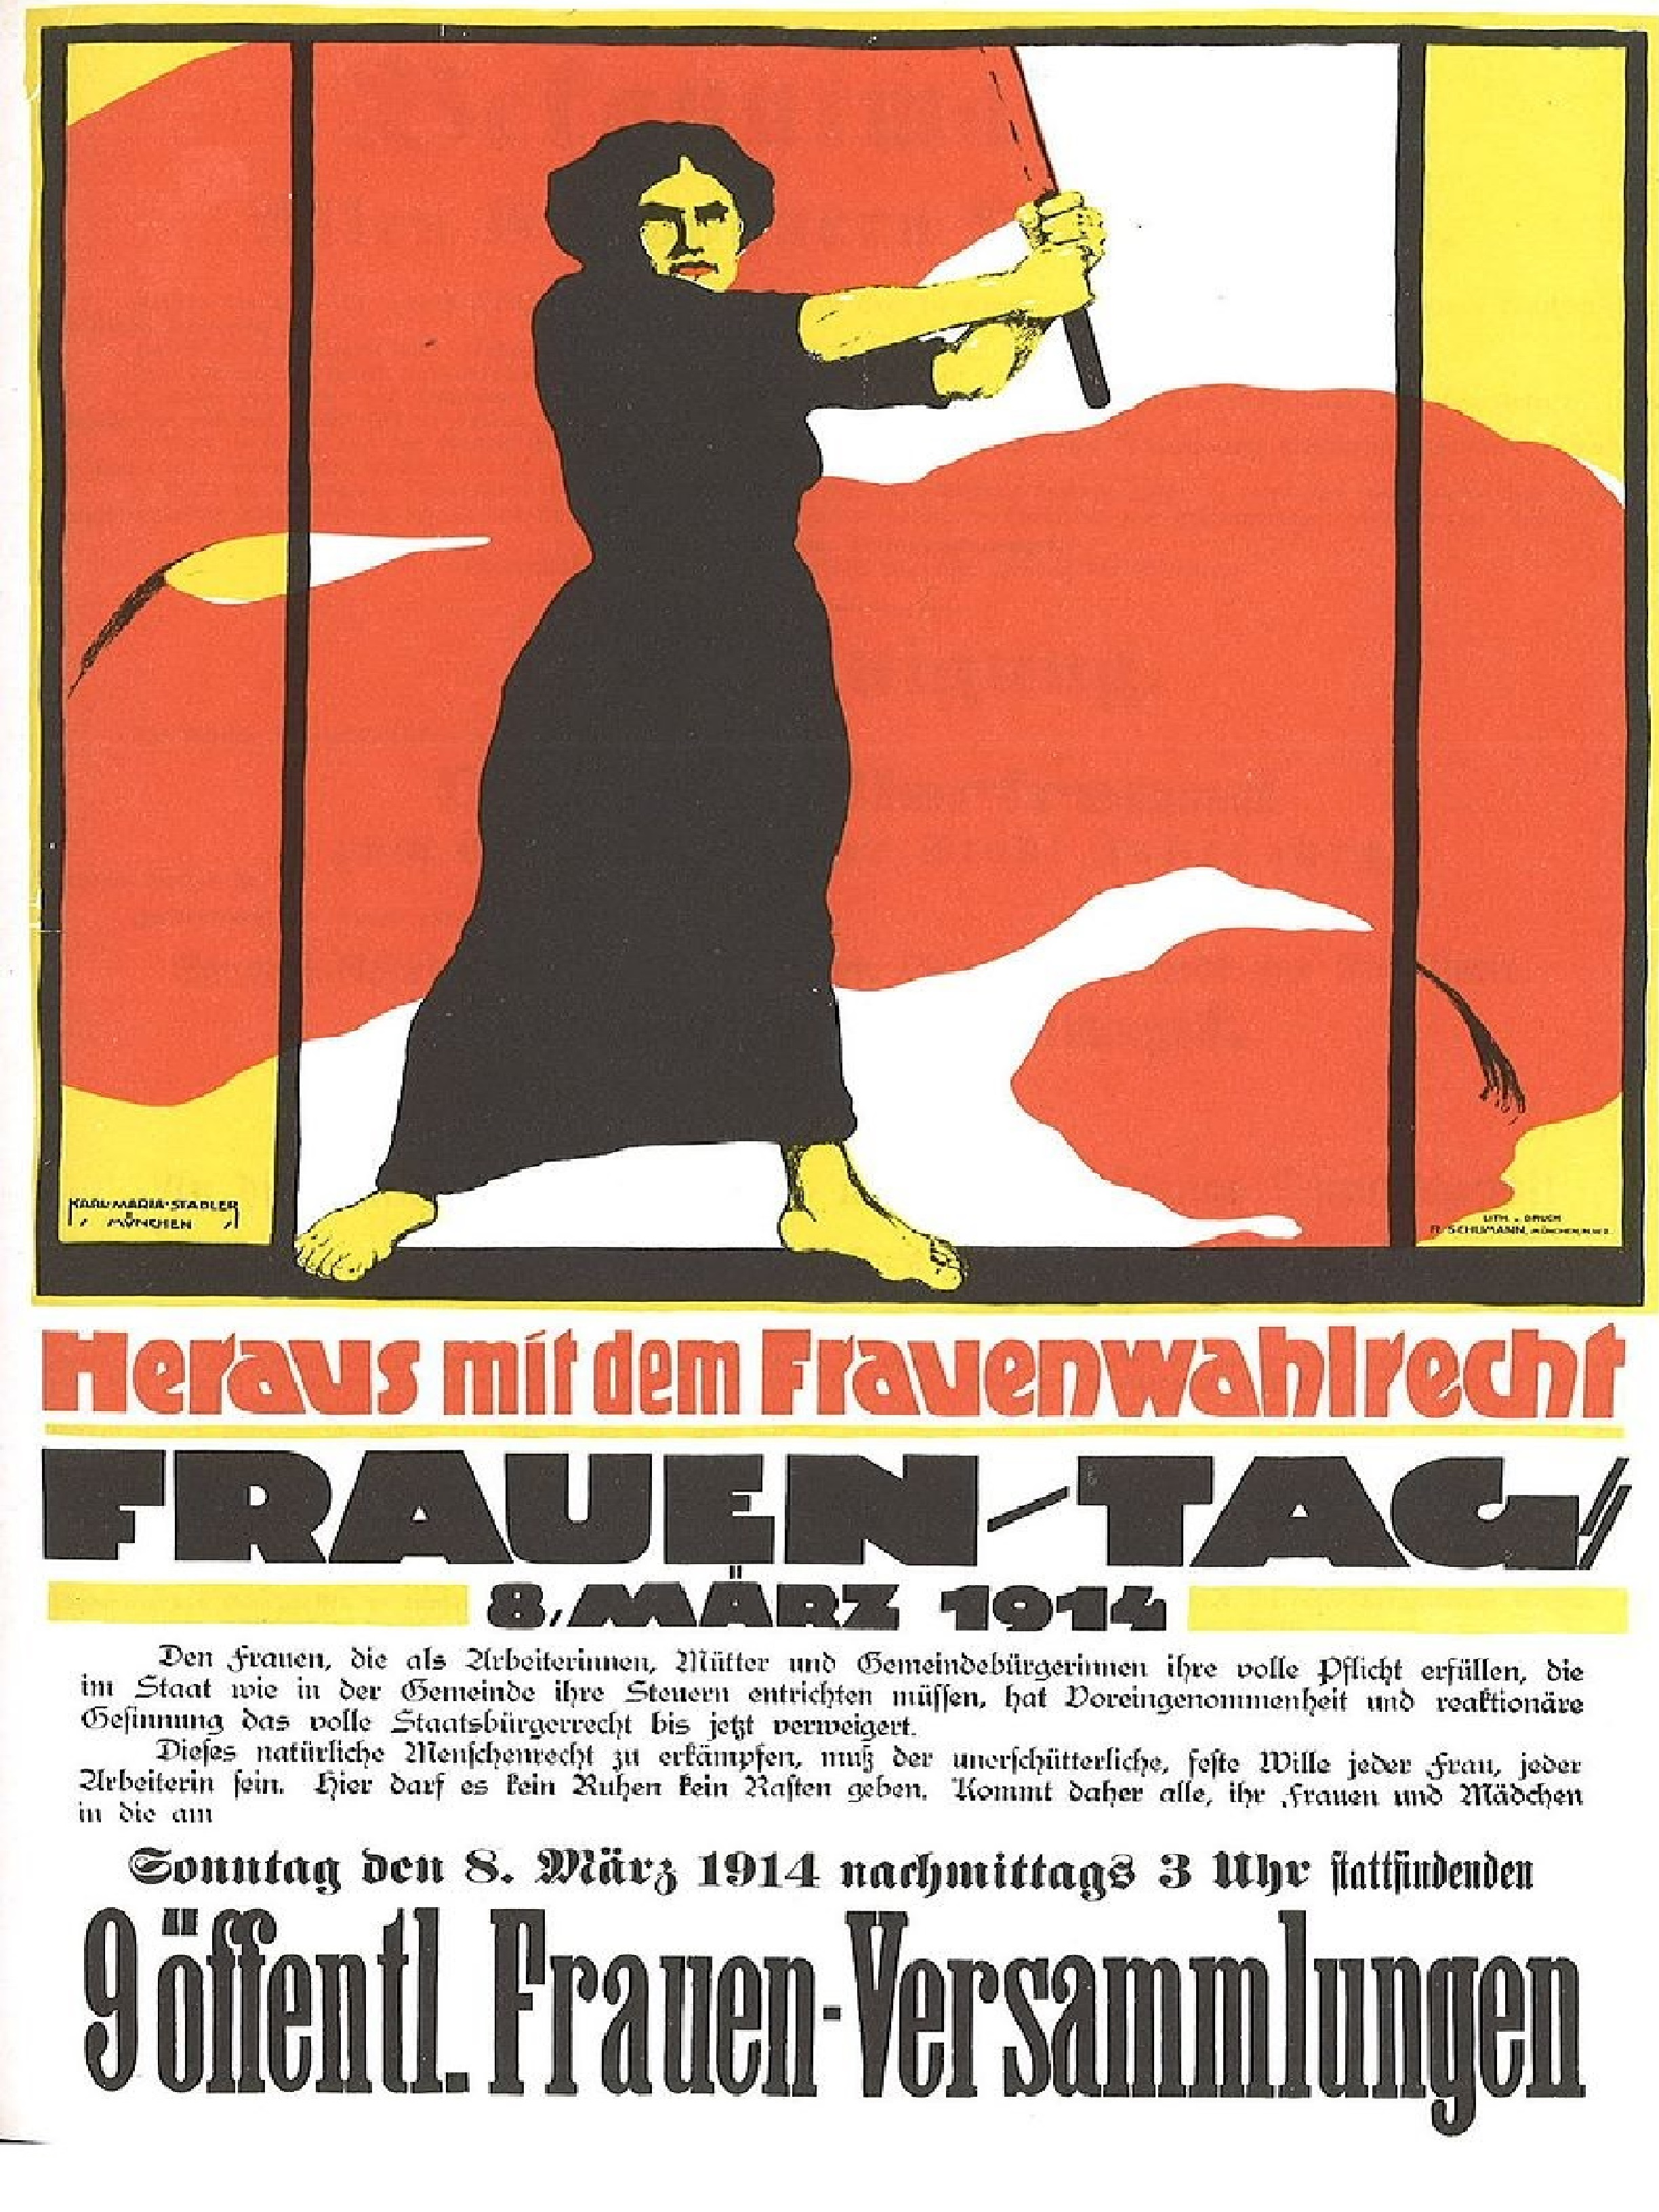 1914 Women's Day poster - calling for the vote